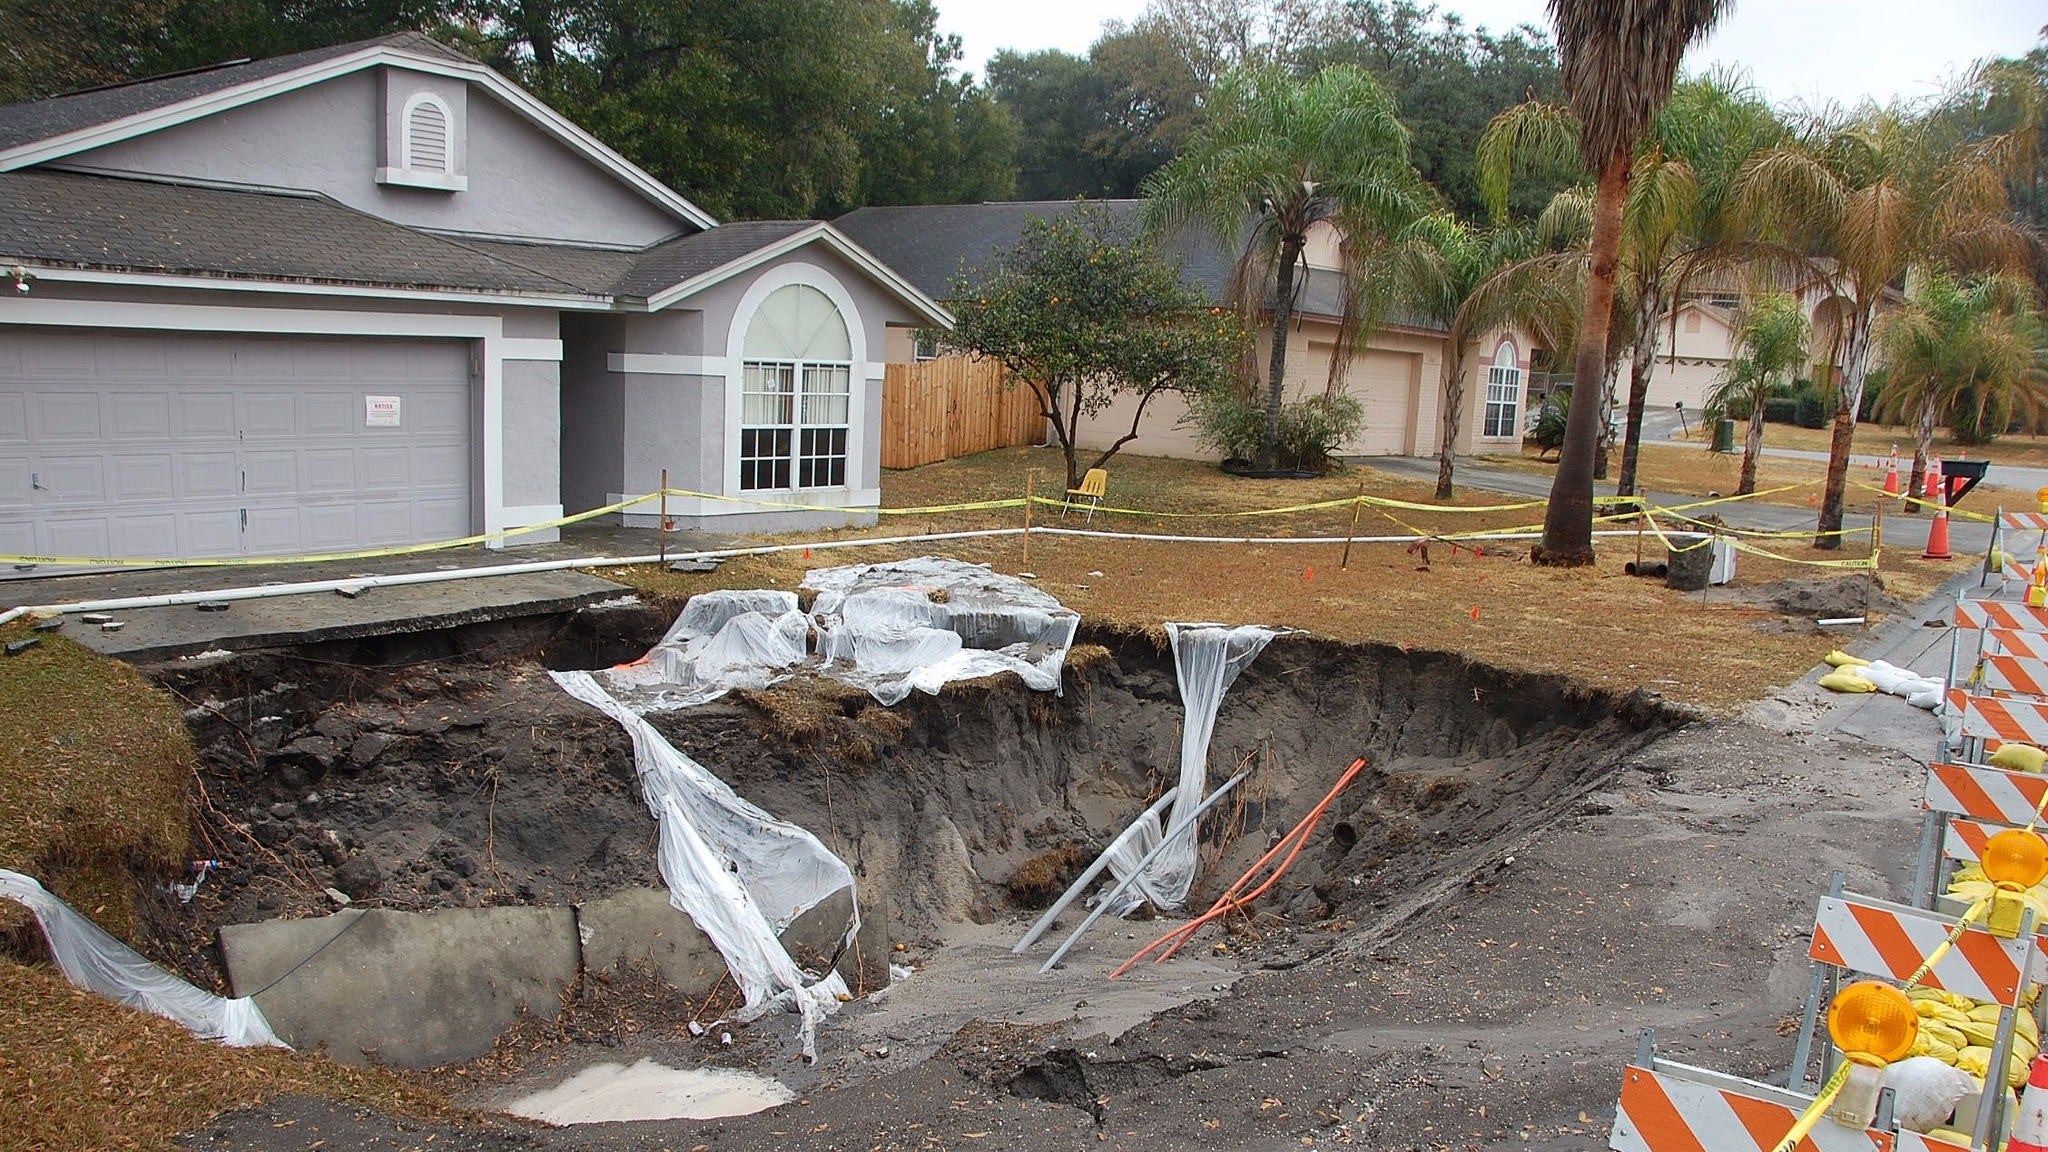 Man-Eating Sinkholes And Other Florida Water Shortage Crises